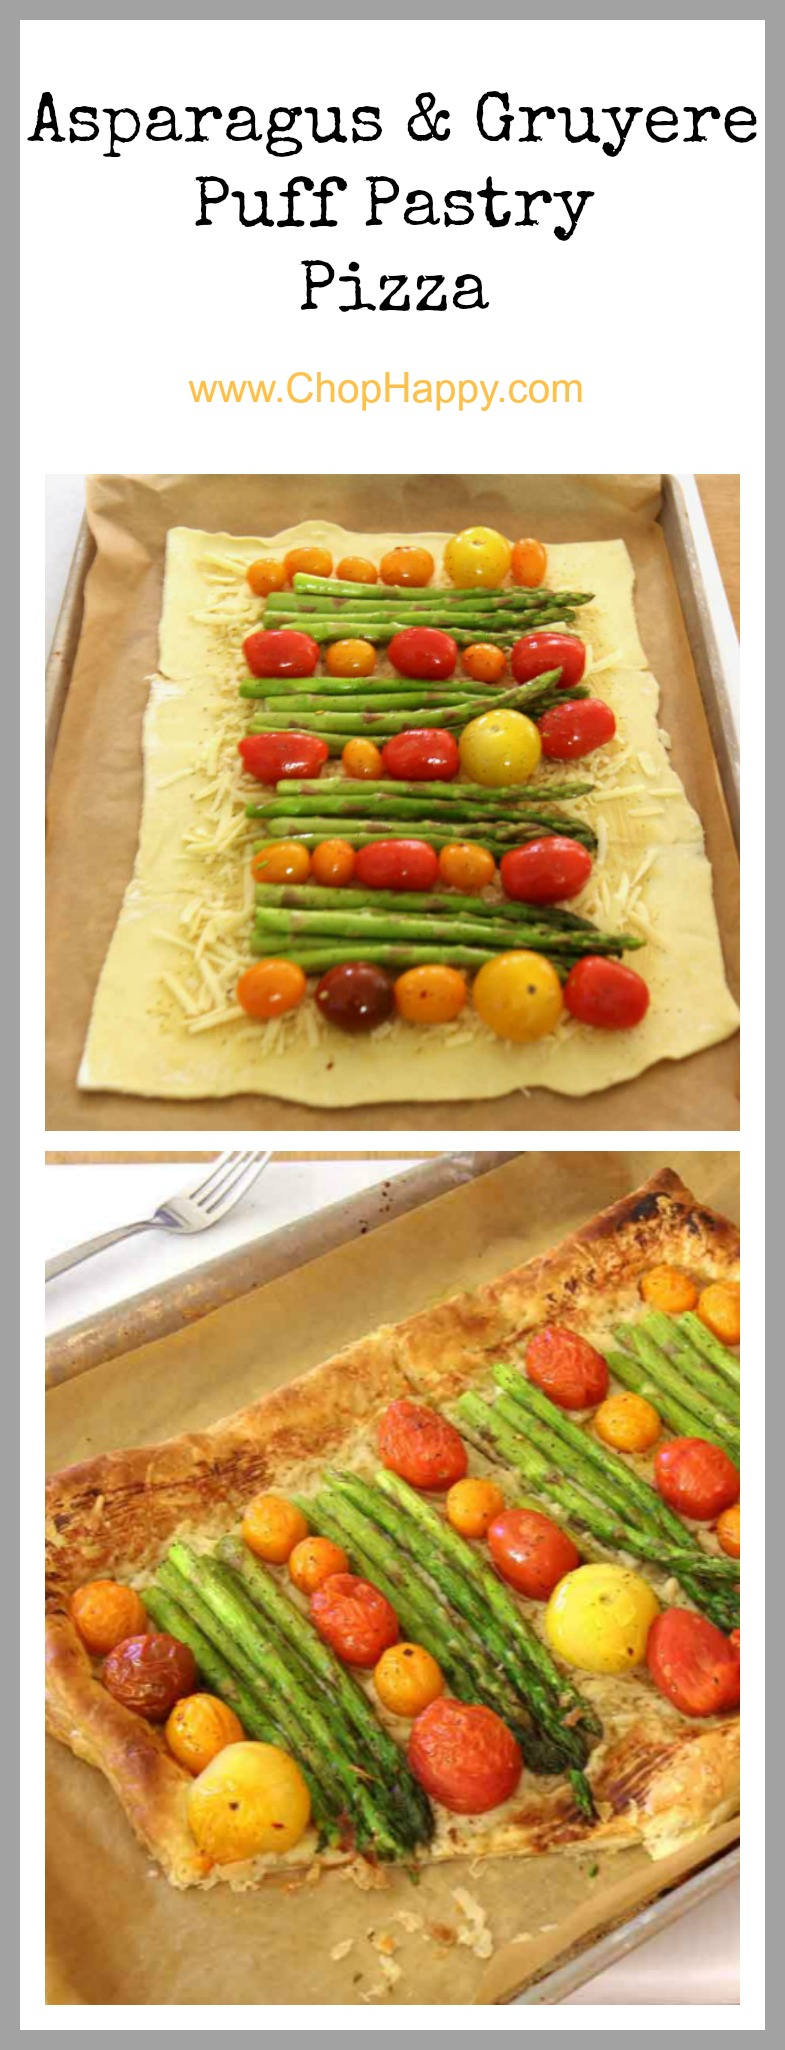 Asparagus and Gruyere Puff Pastry Pizza Recipe - is flaky, cheesy, and amazing comfort food smiles. Grab puff pastry, tomatoes, cheese, and fun spices for this easy recipe. www.ChopHappy.com #pizza #appetizer